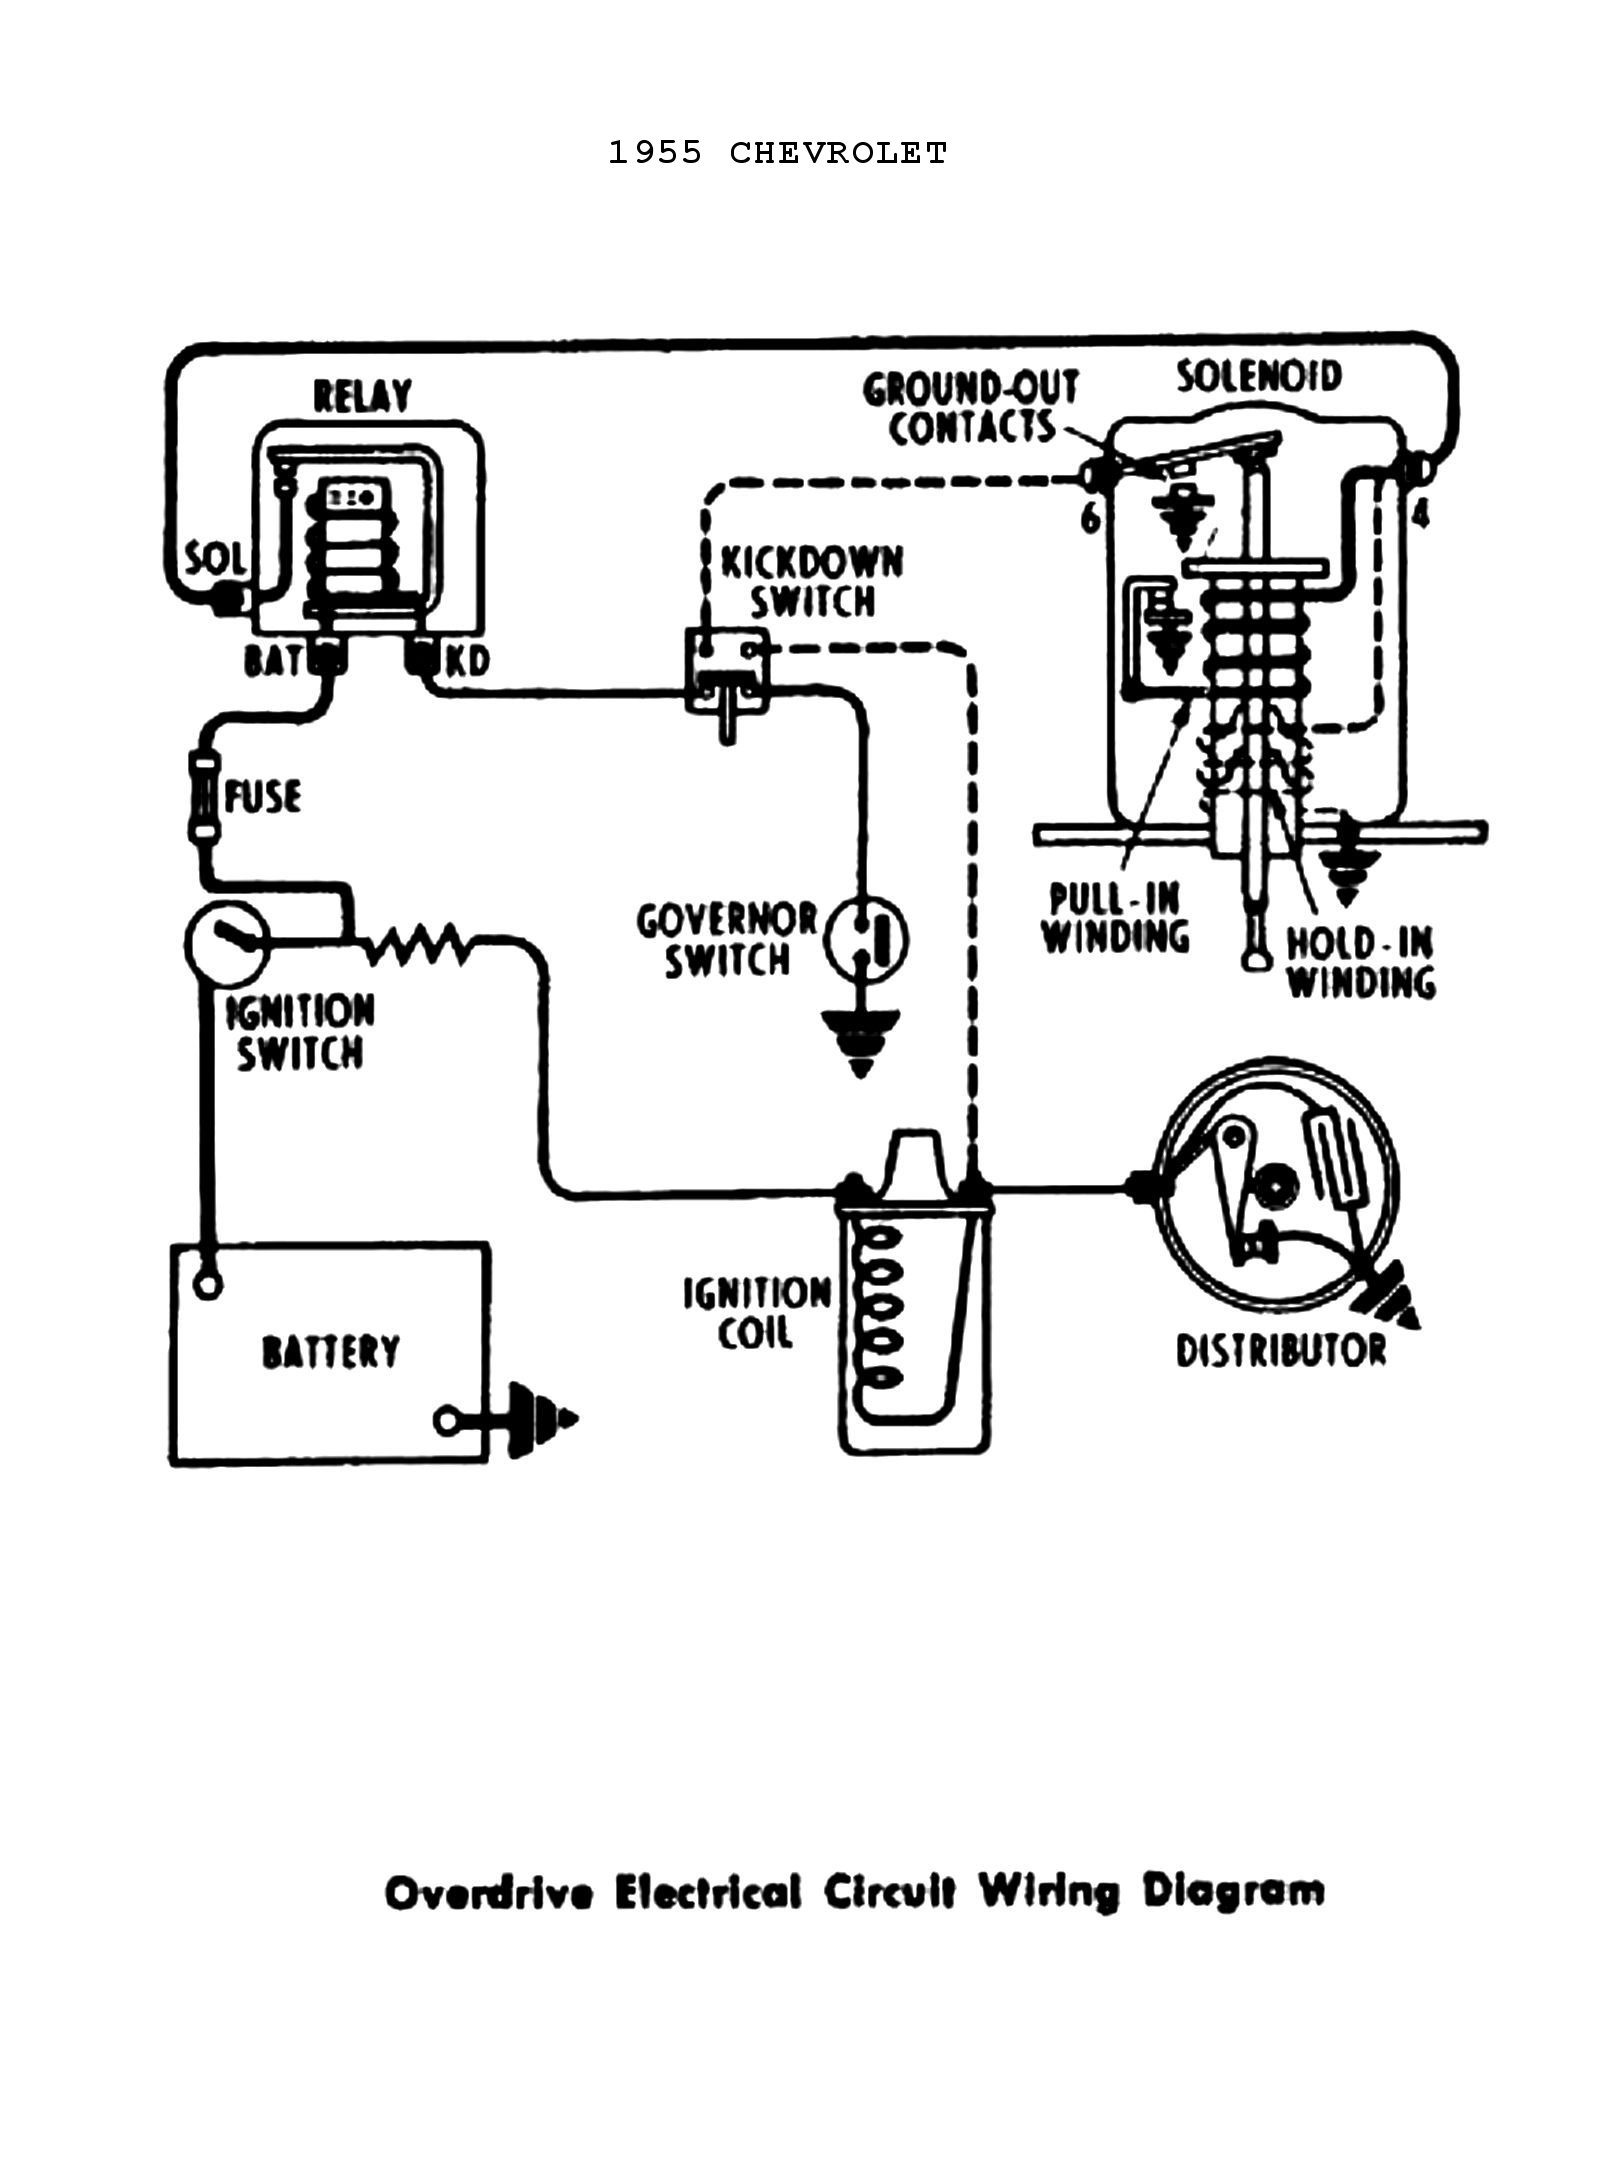 55odtrans1 chevy wiring diagrams chevrolet ignition wiring diagram at mifinder.co